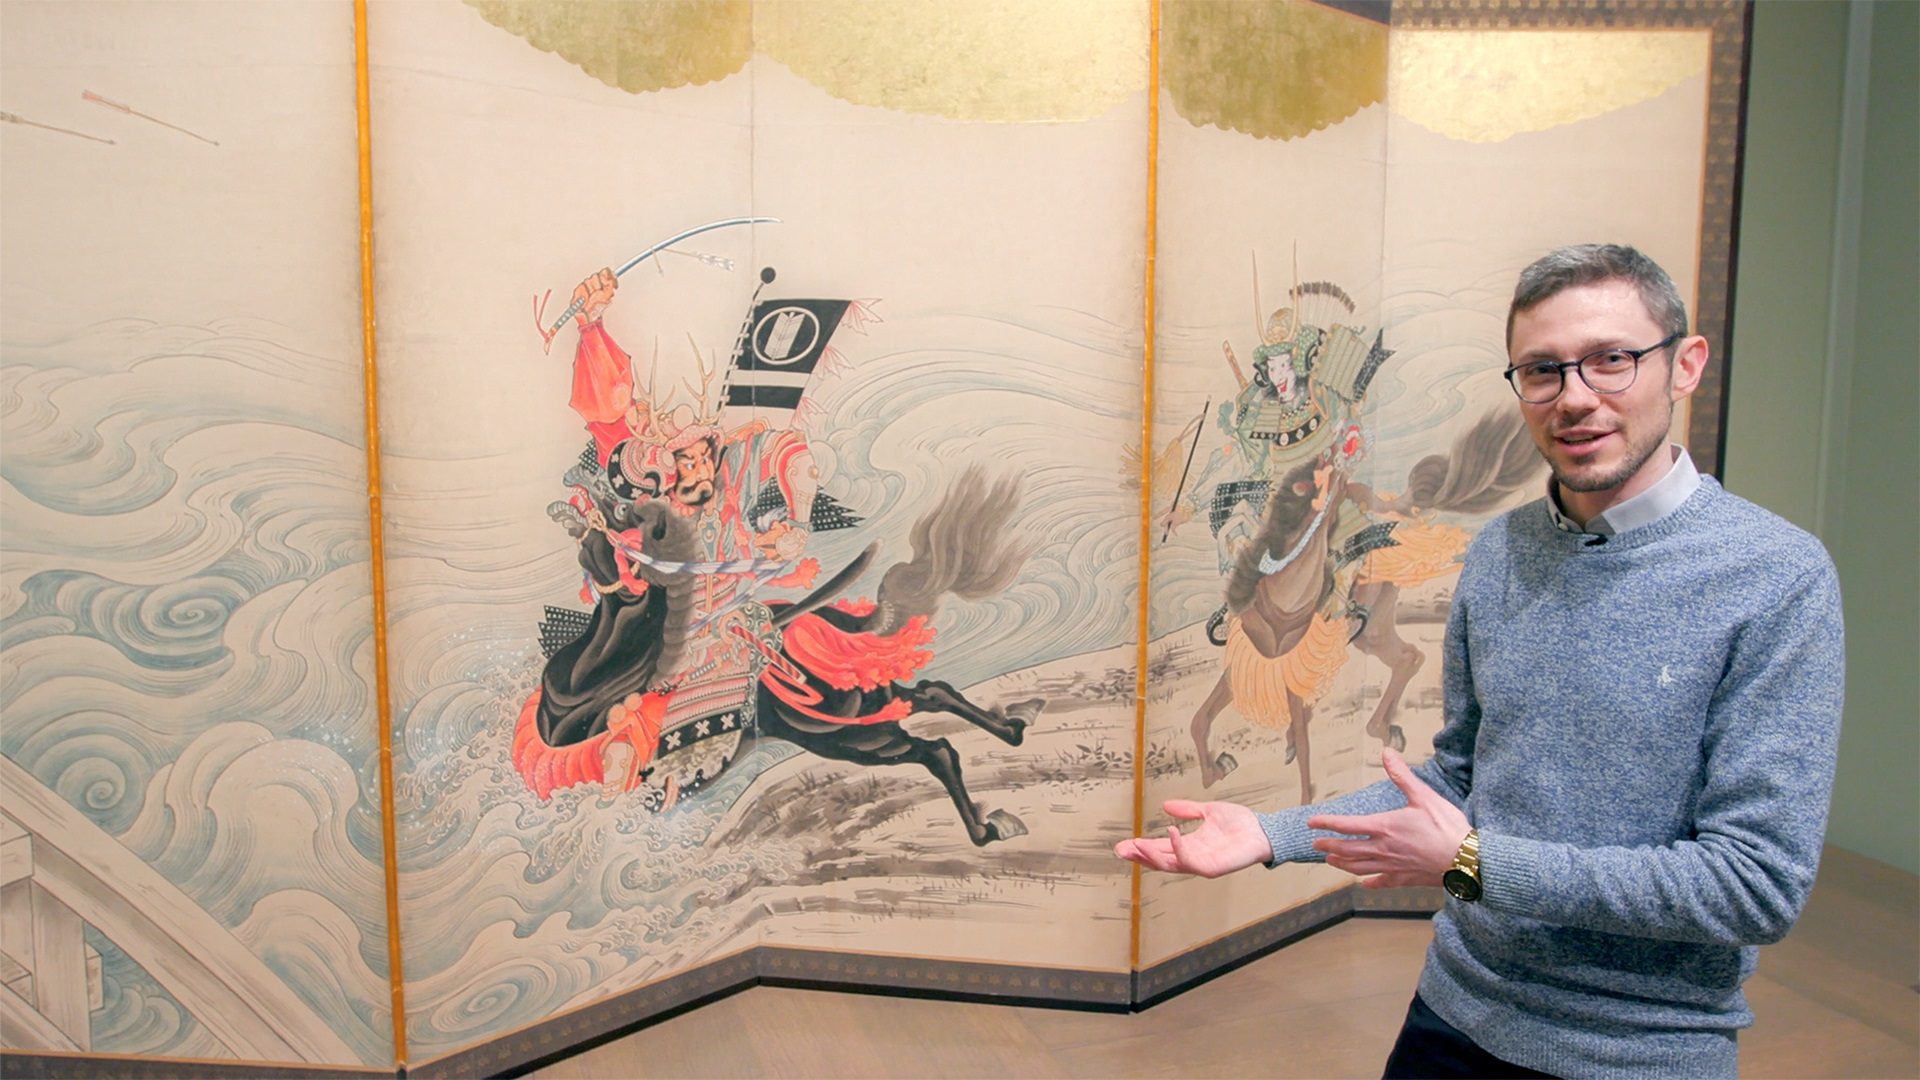 A person with glasses and short hair stands in front of and gestures toward a folded screen. The screen painting shows two warriors on horseback with swords drawn, charging forward.